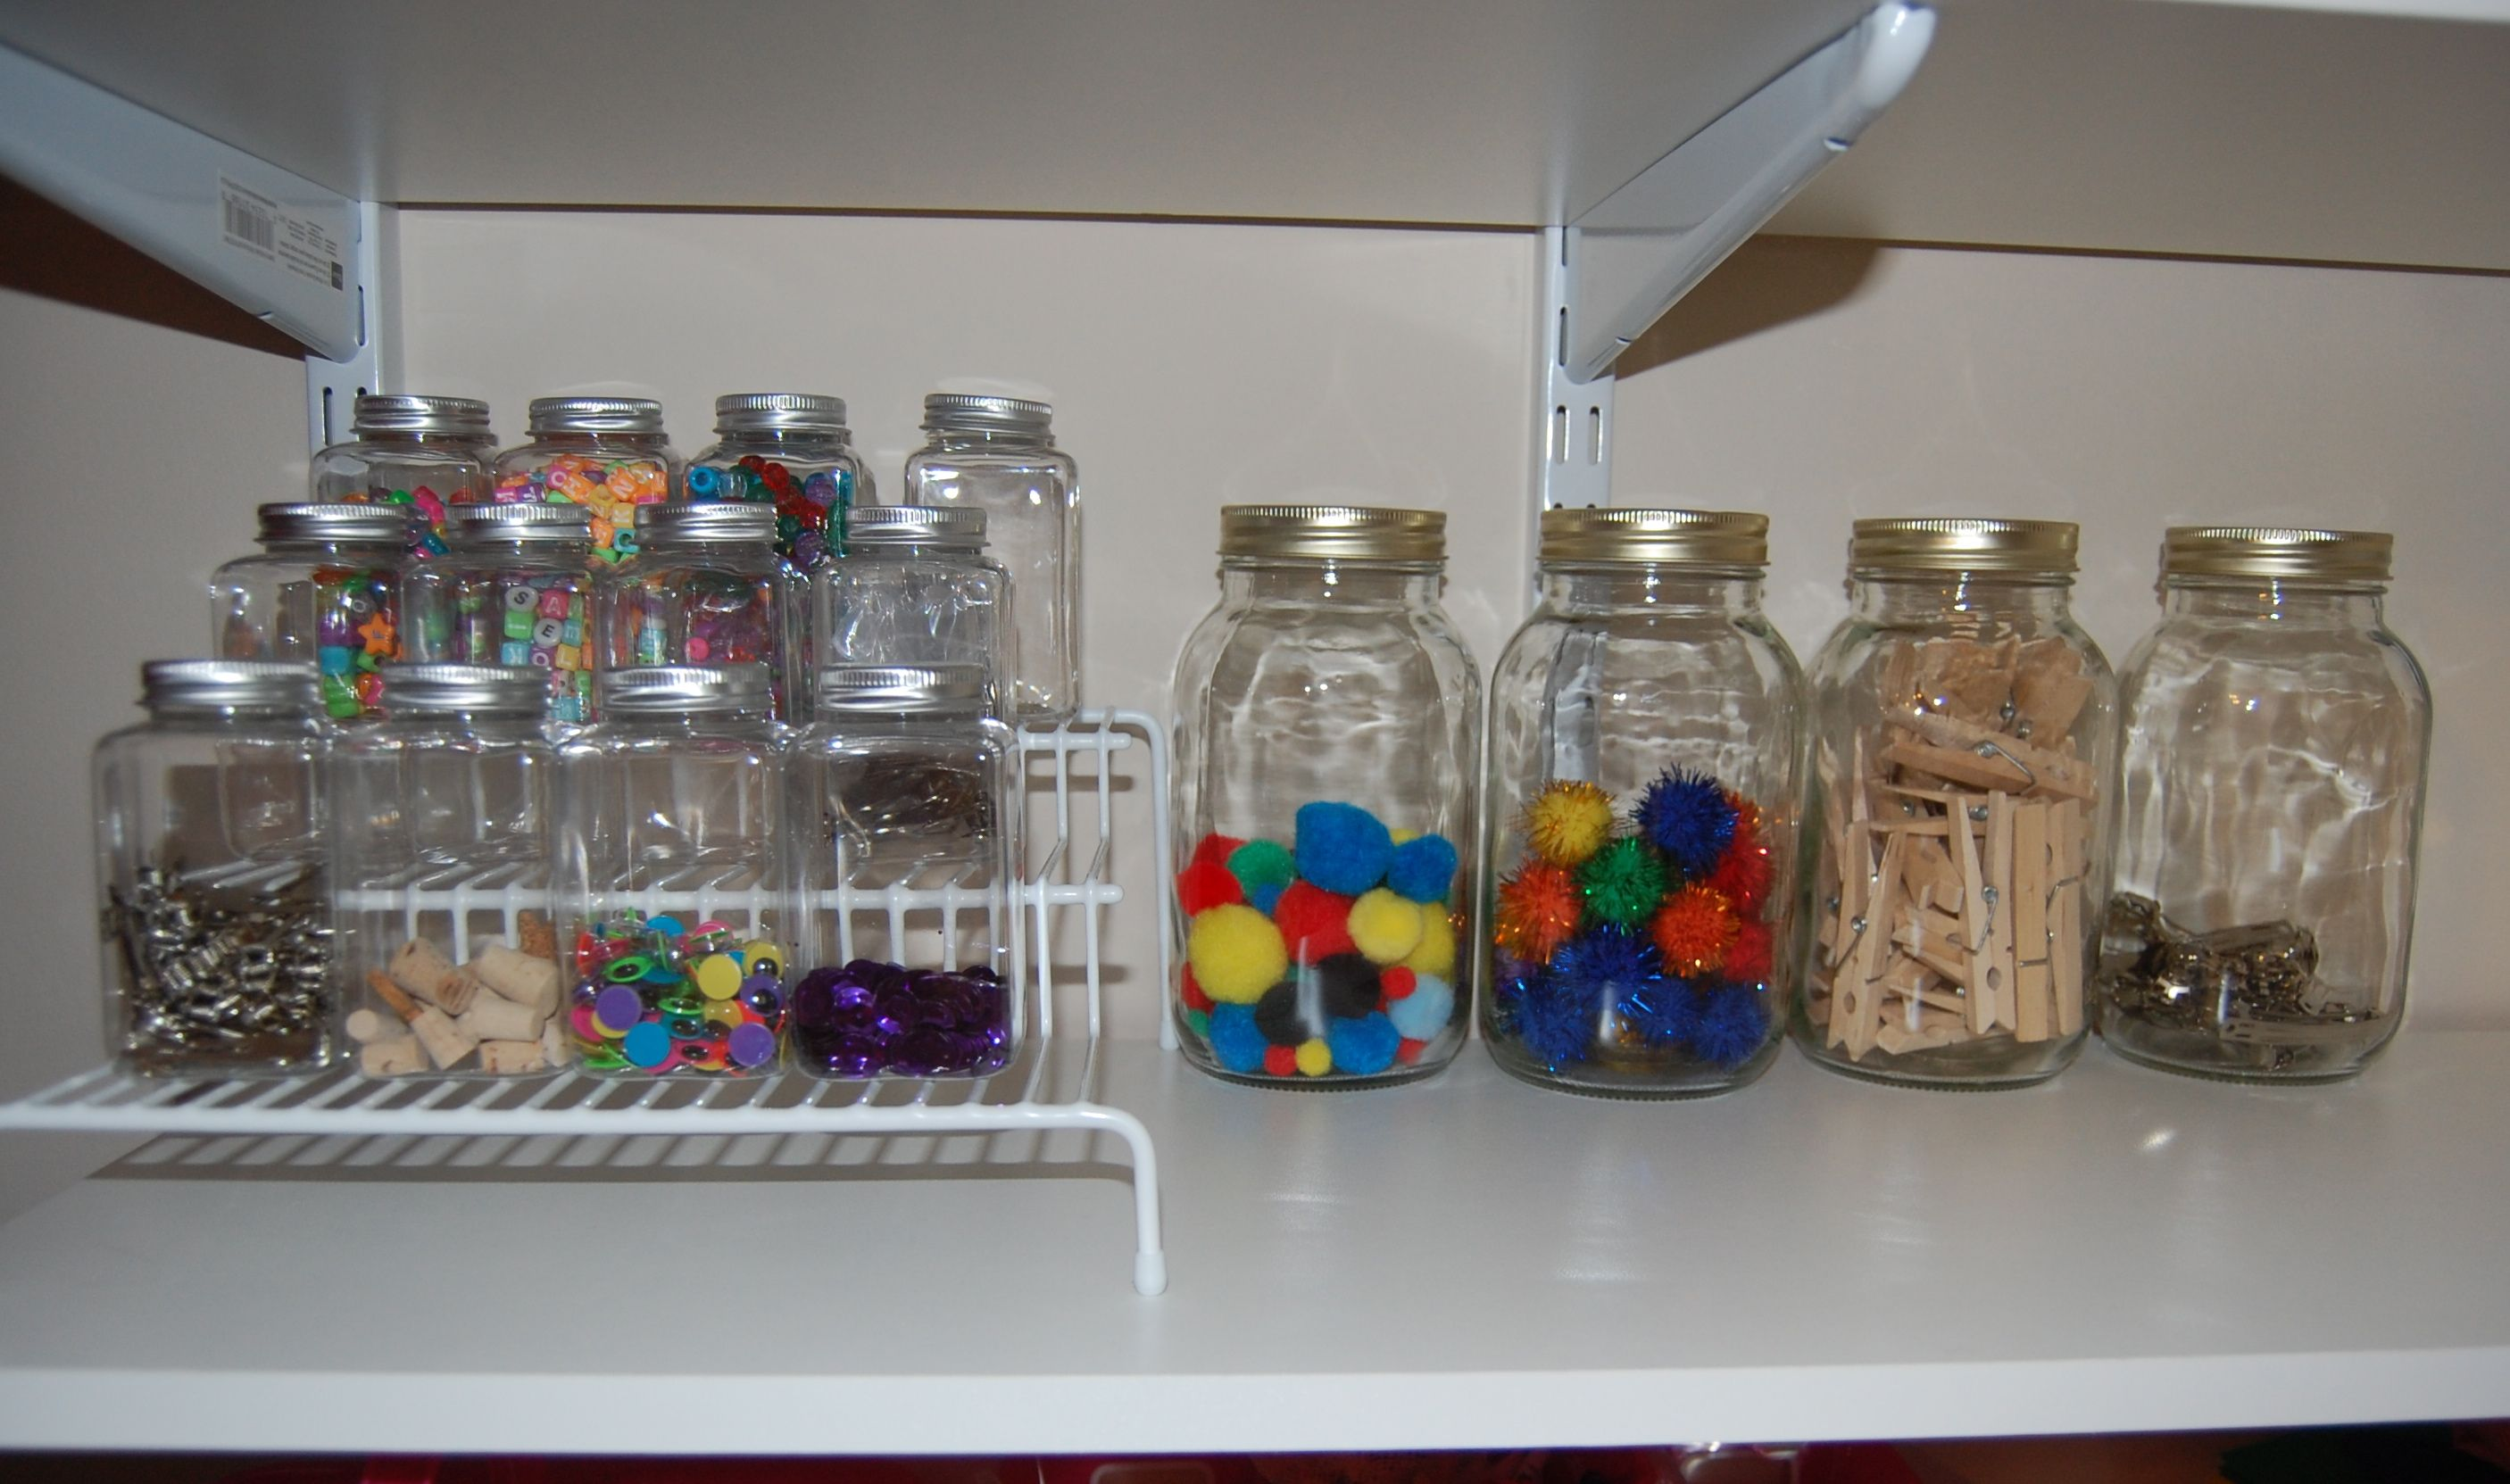 Great recycling idea for empty jars to fill with crafting goodies